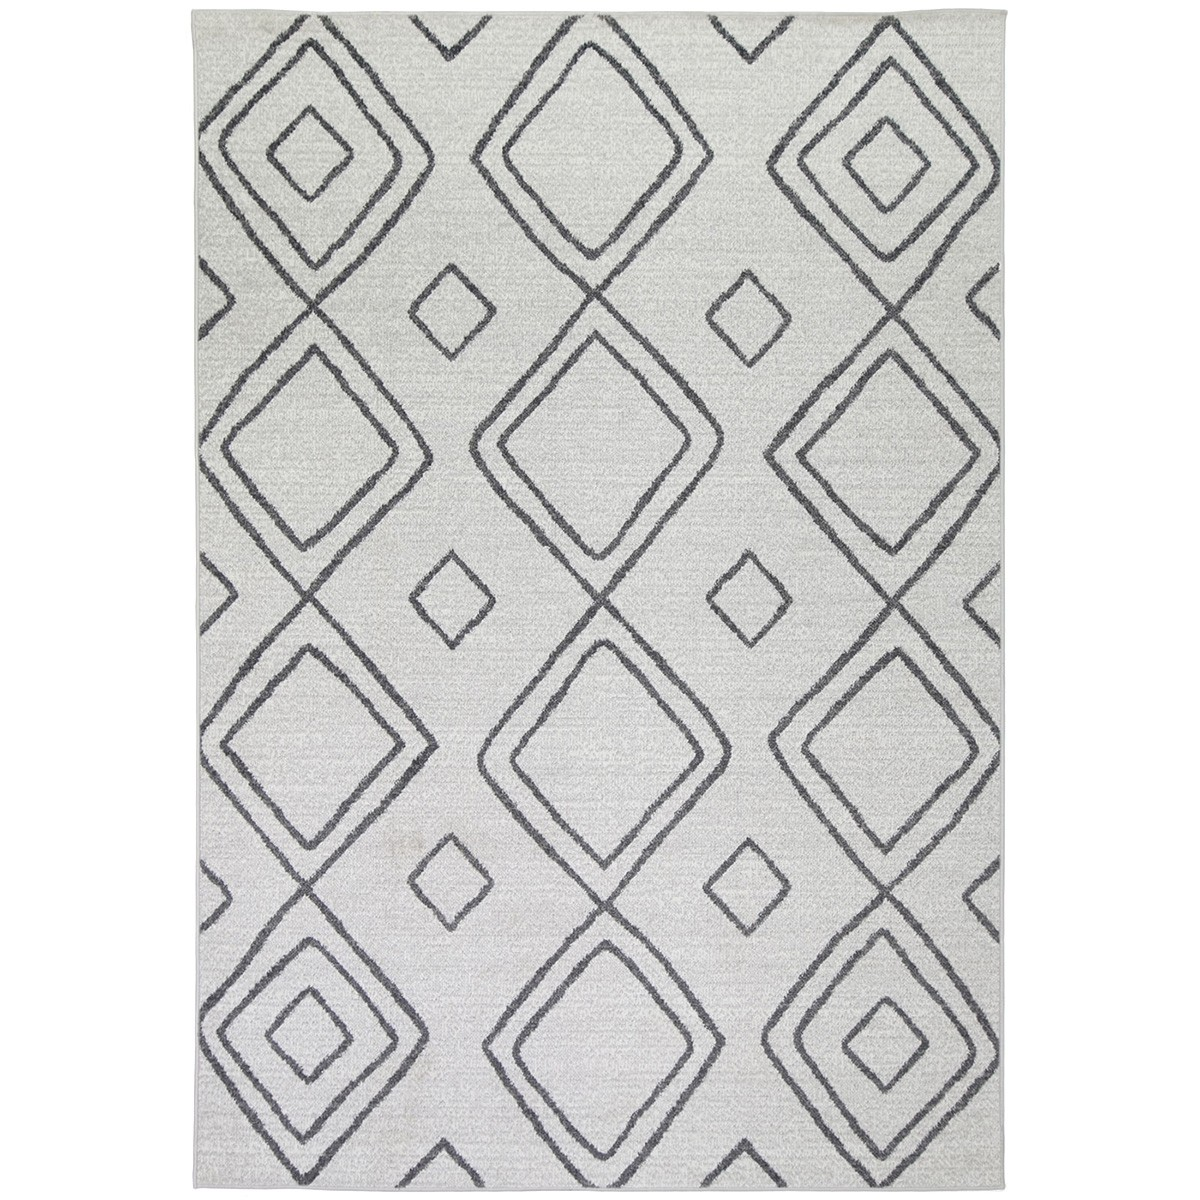 Courtyard Marrakesh Modern Rug, 230x160cm, Ivory / Grey